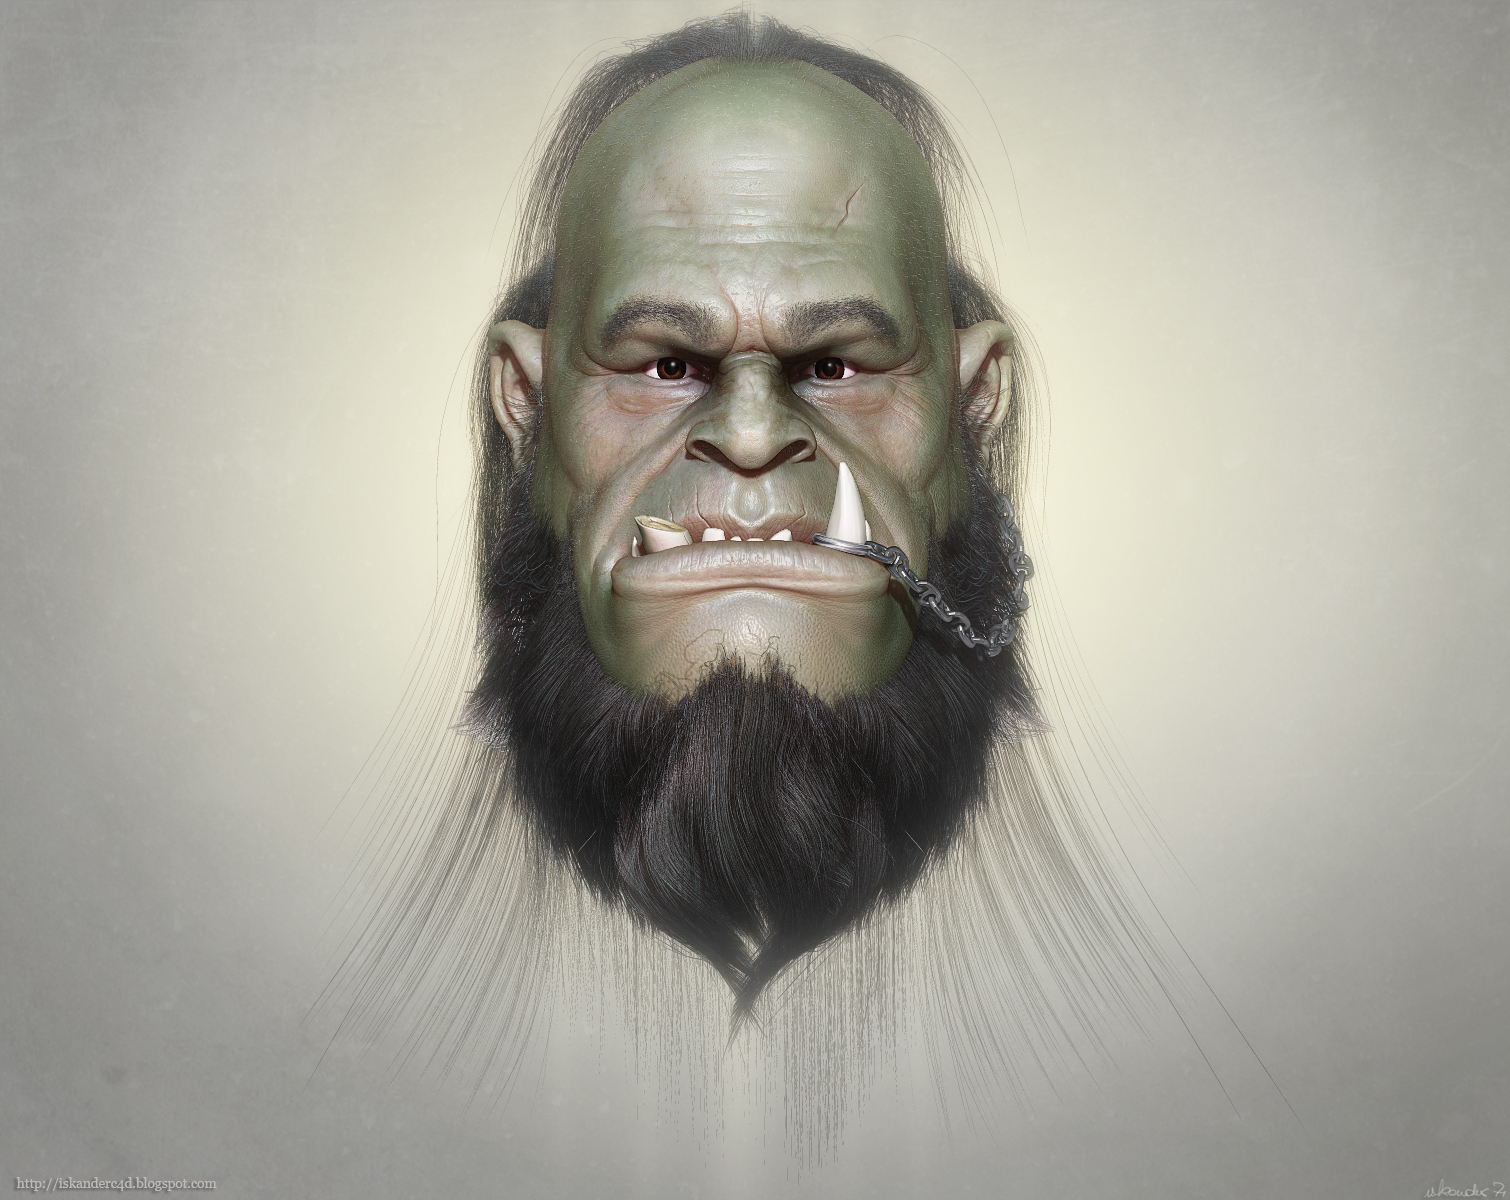 Orc portrait by iskander71